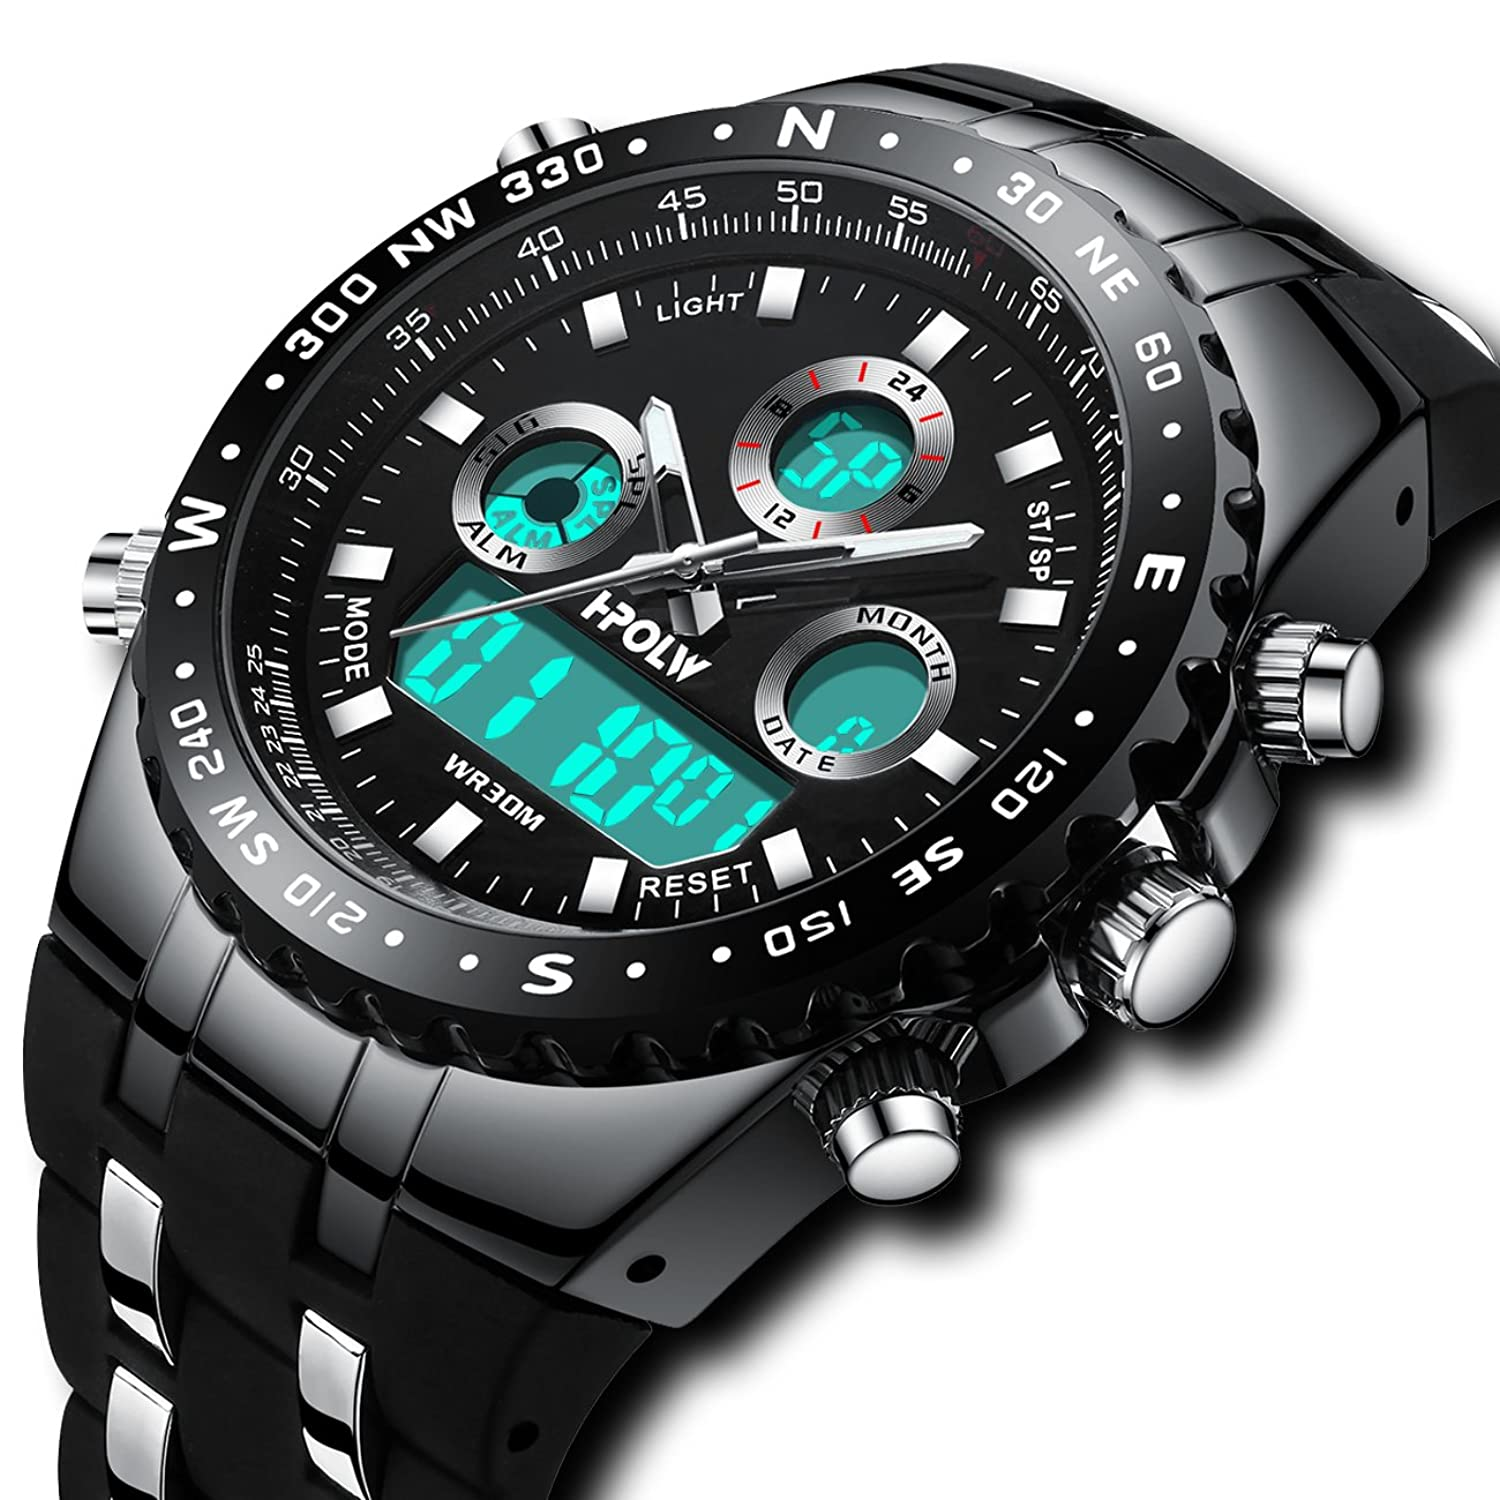 casio watches face mobile coming is tough tech hybrid blue smartwatch like s your g shock